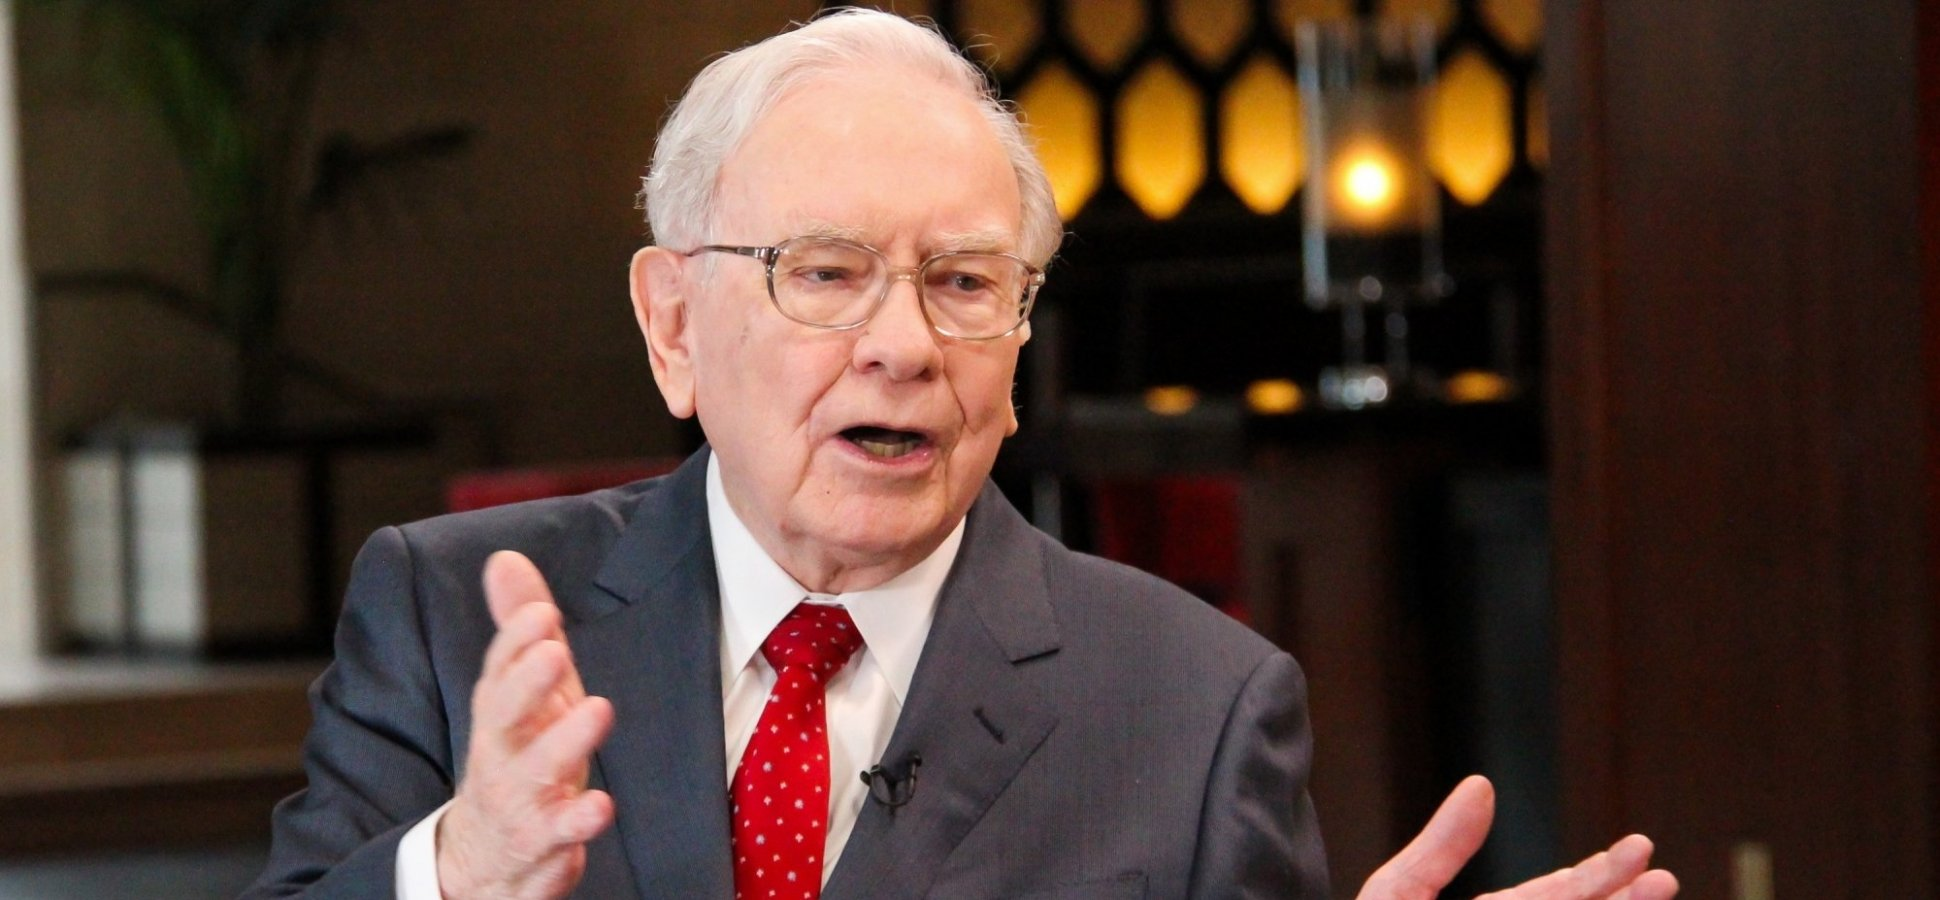 Warren Buffett Says When It Comes to Your Future Success, Take Care of These 2 Things (or You'll Be a 'Wreck')